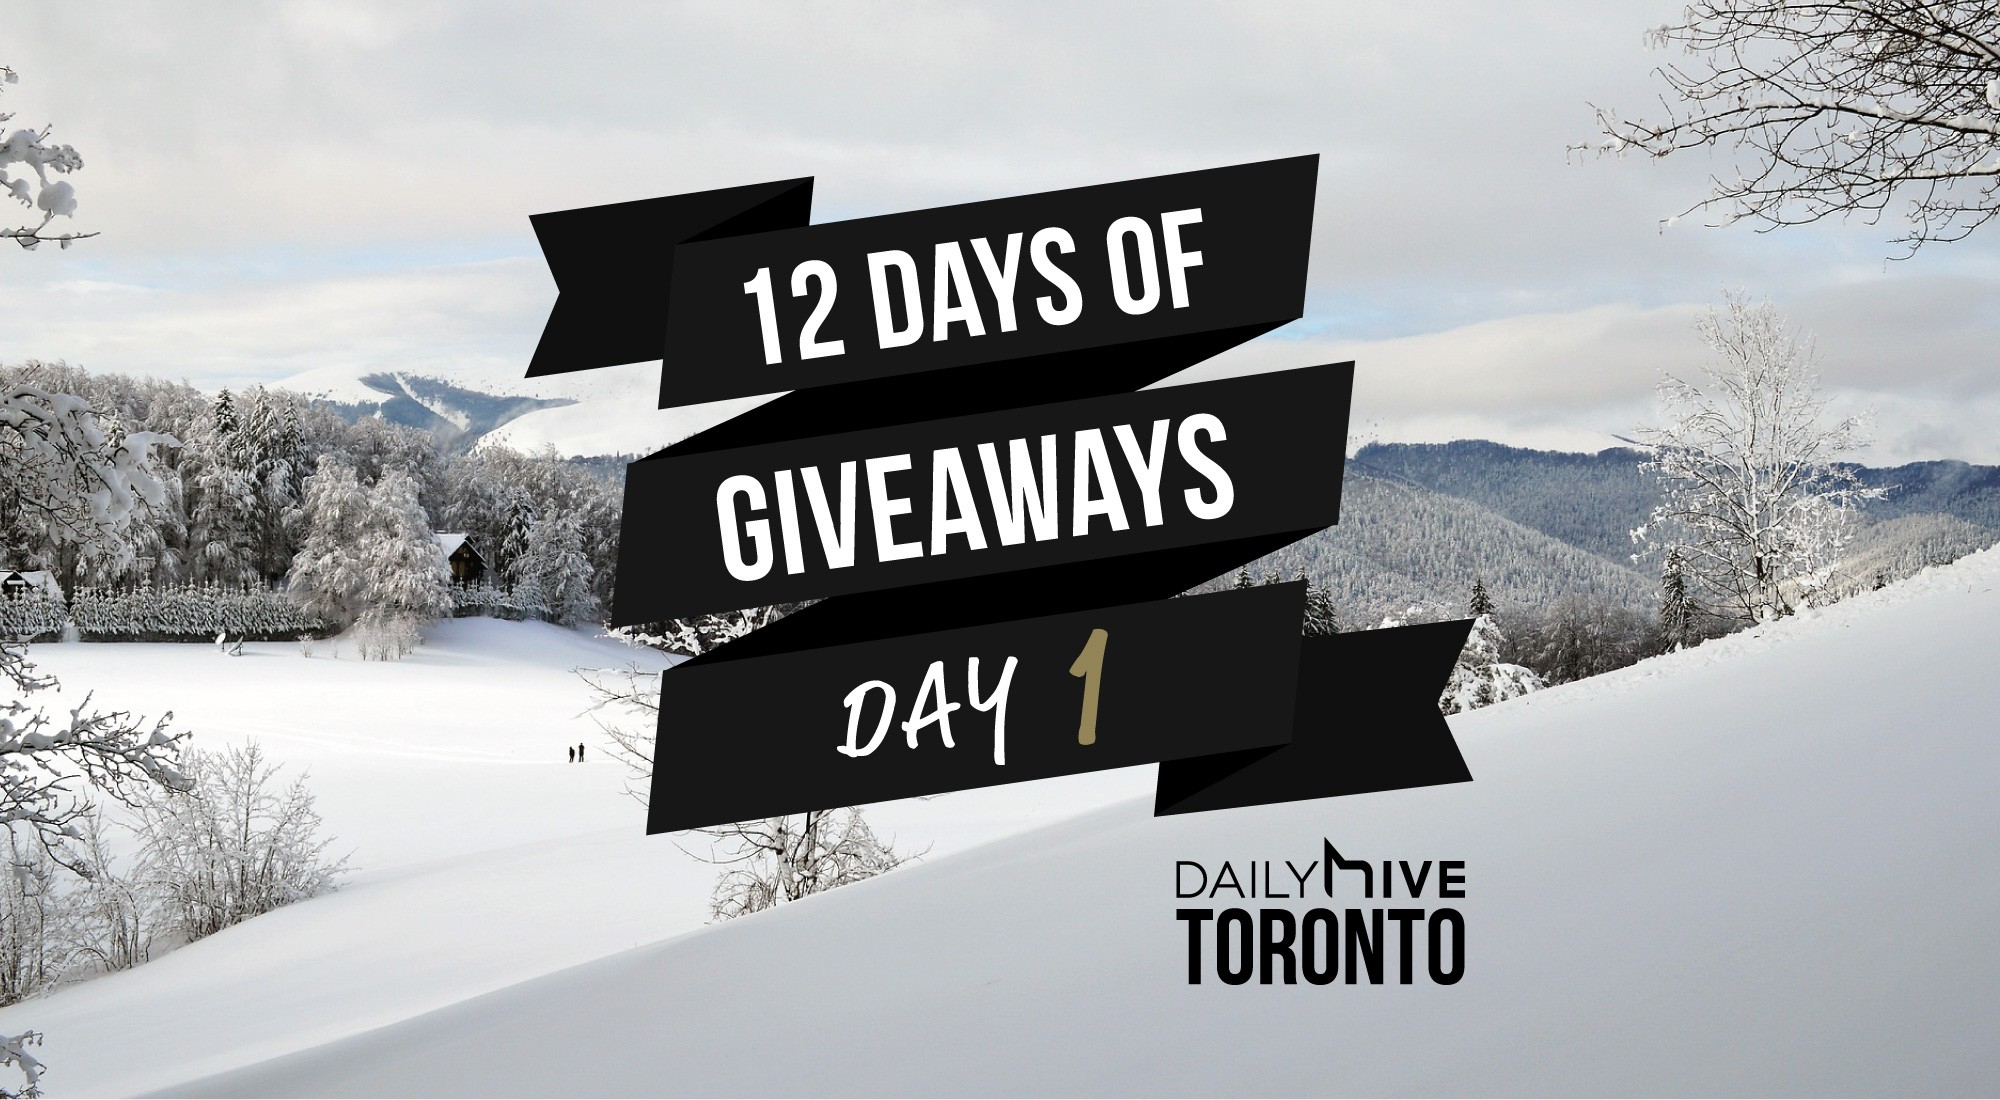 12 days of giveaways toronto 1